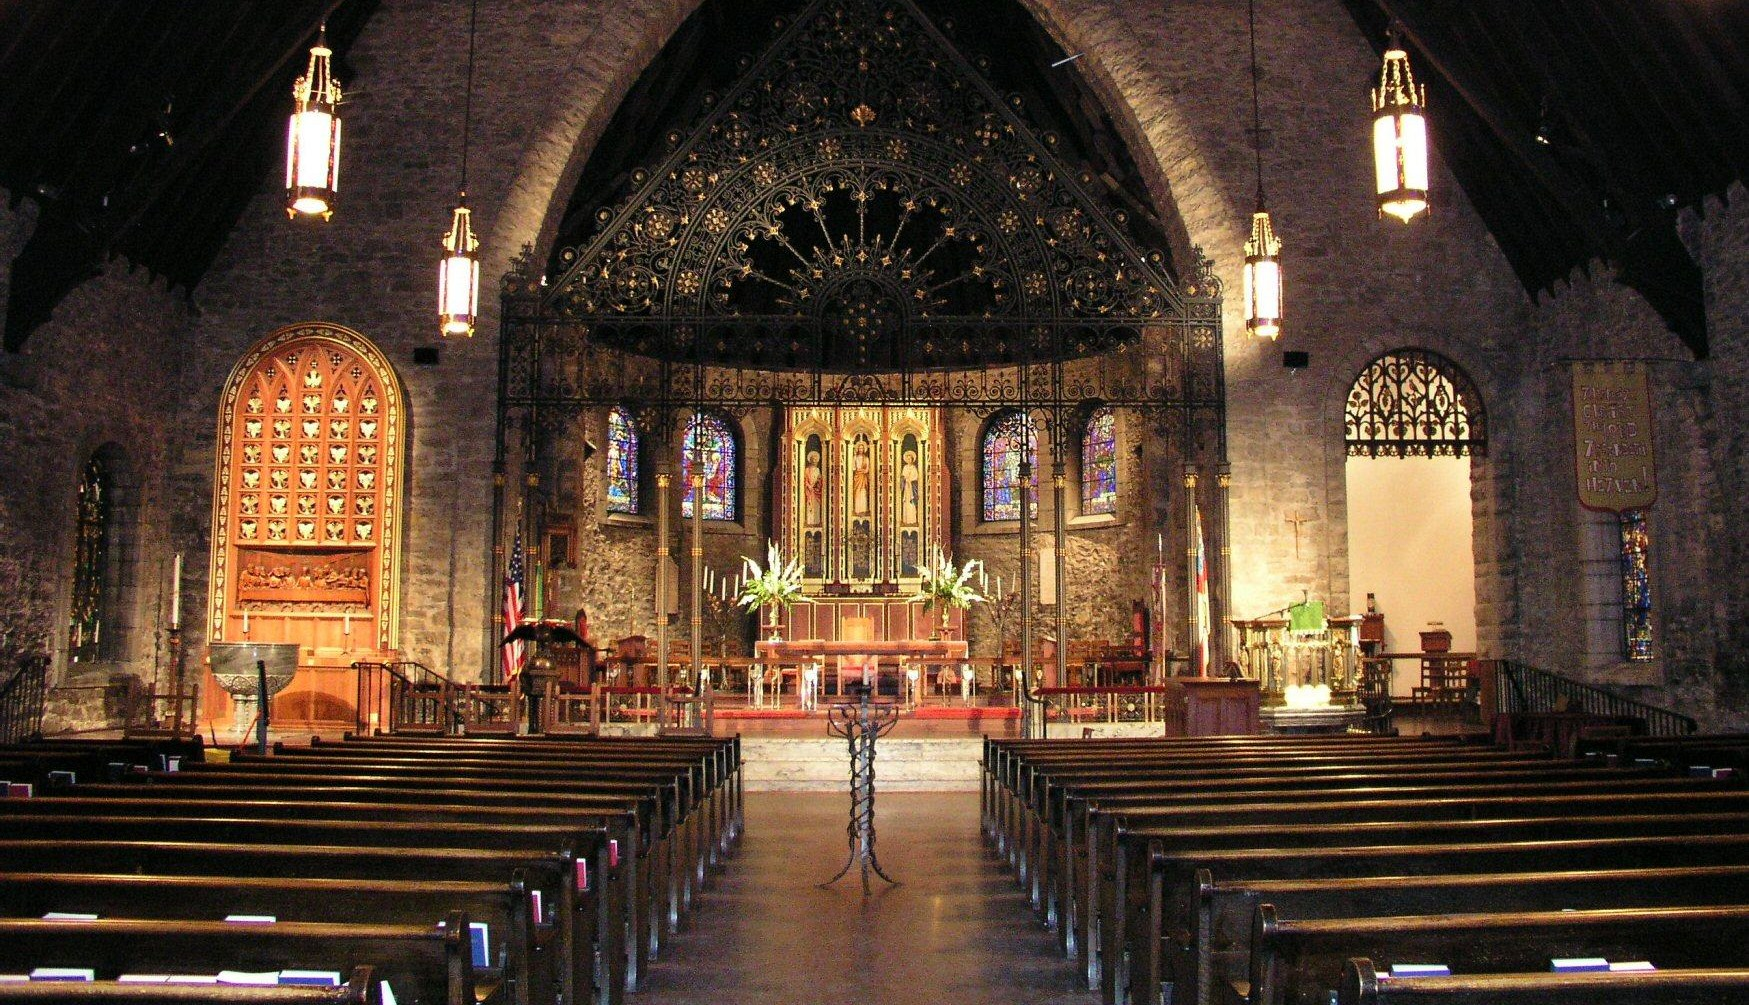 MUSIC THAT UNITES WHERE DOCTRINE CAN'T: Local Cathedrals see eye-to-eye on concert series